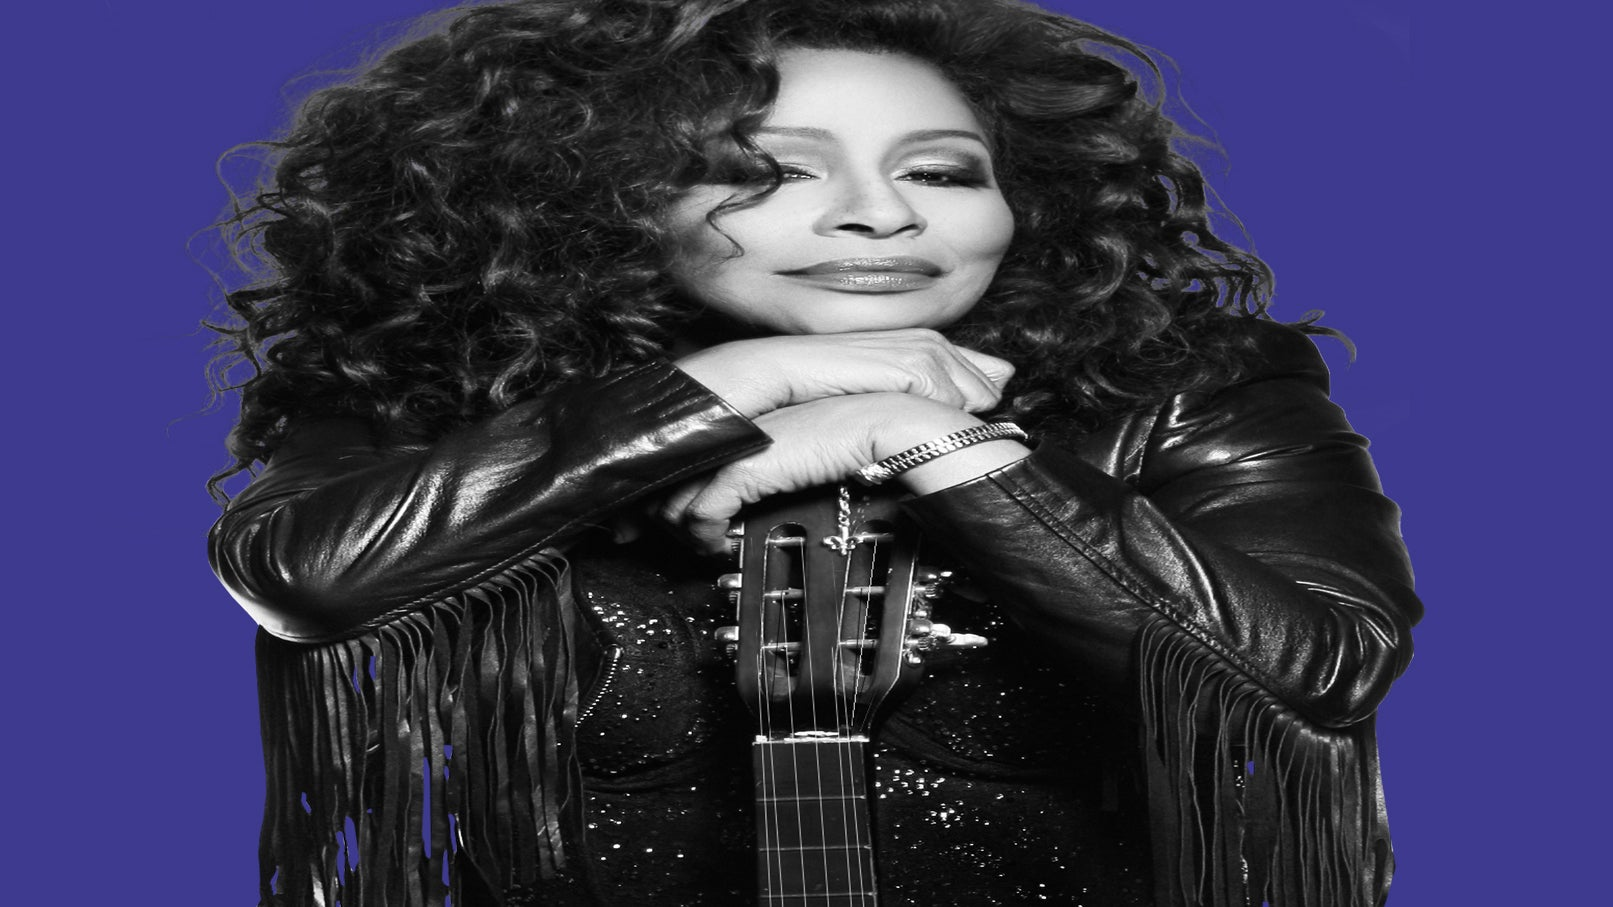 17 Badass Chaka Khan Quotes Every Woman Should Live By